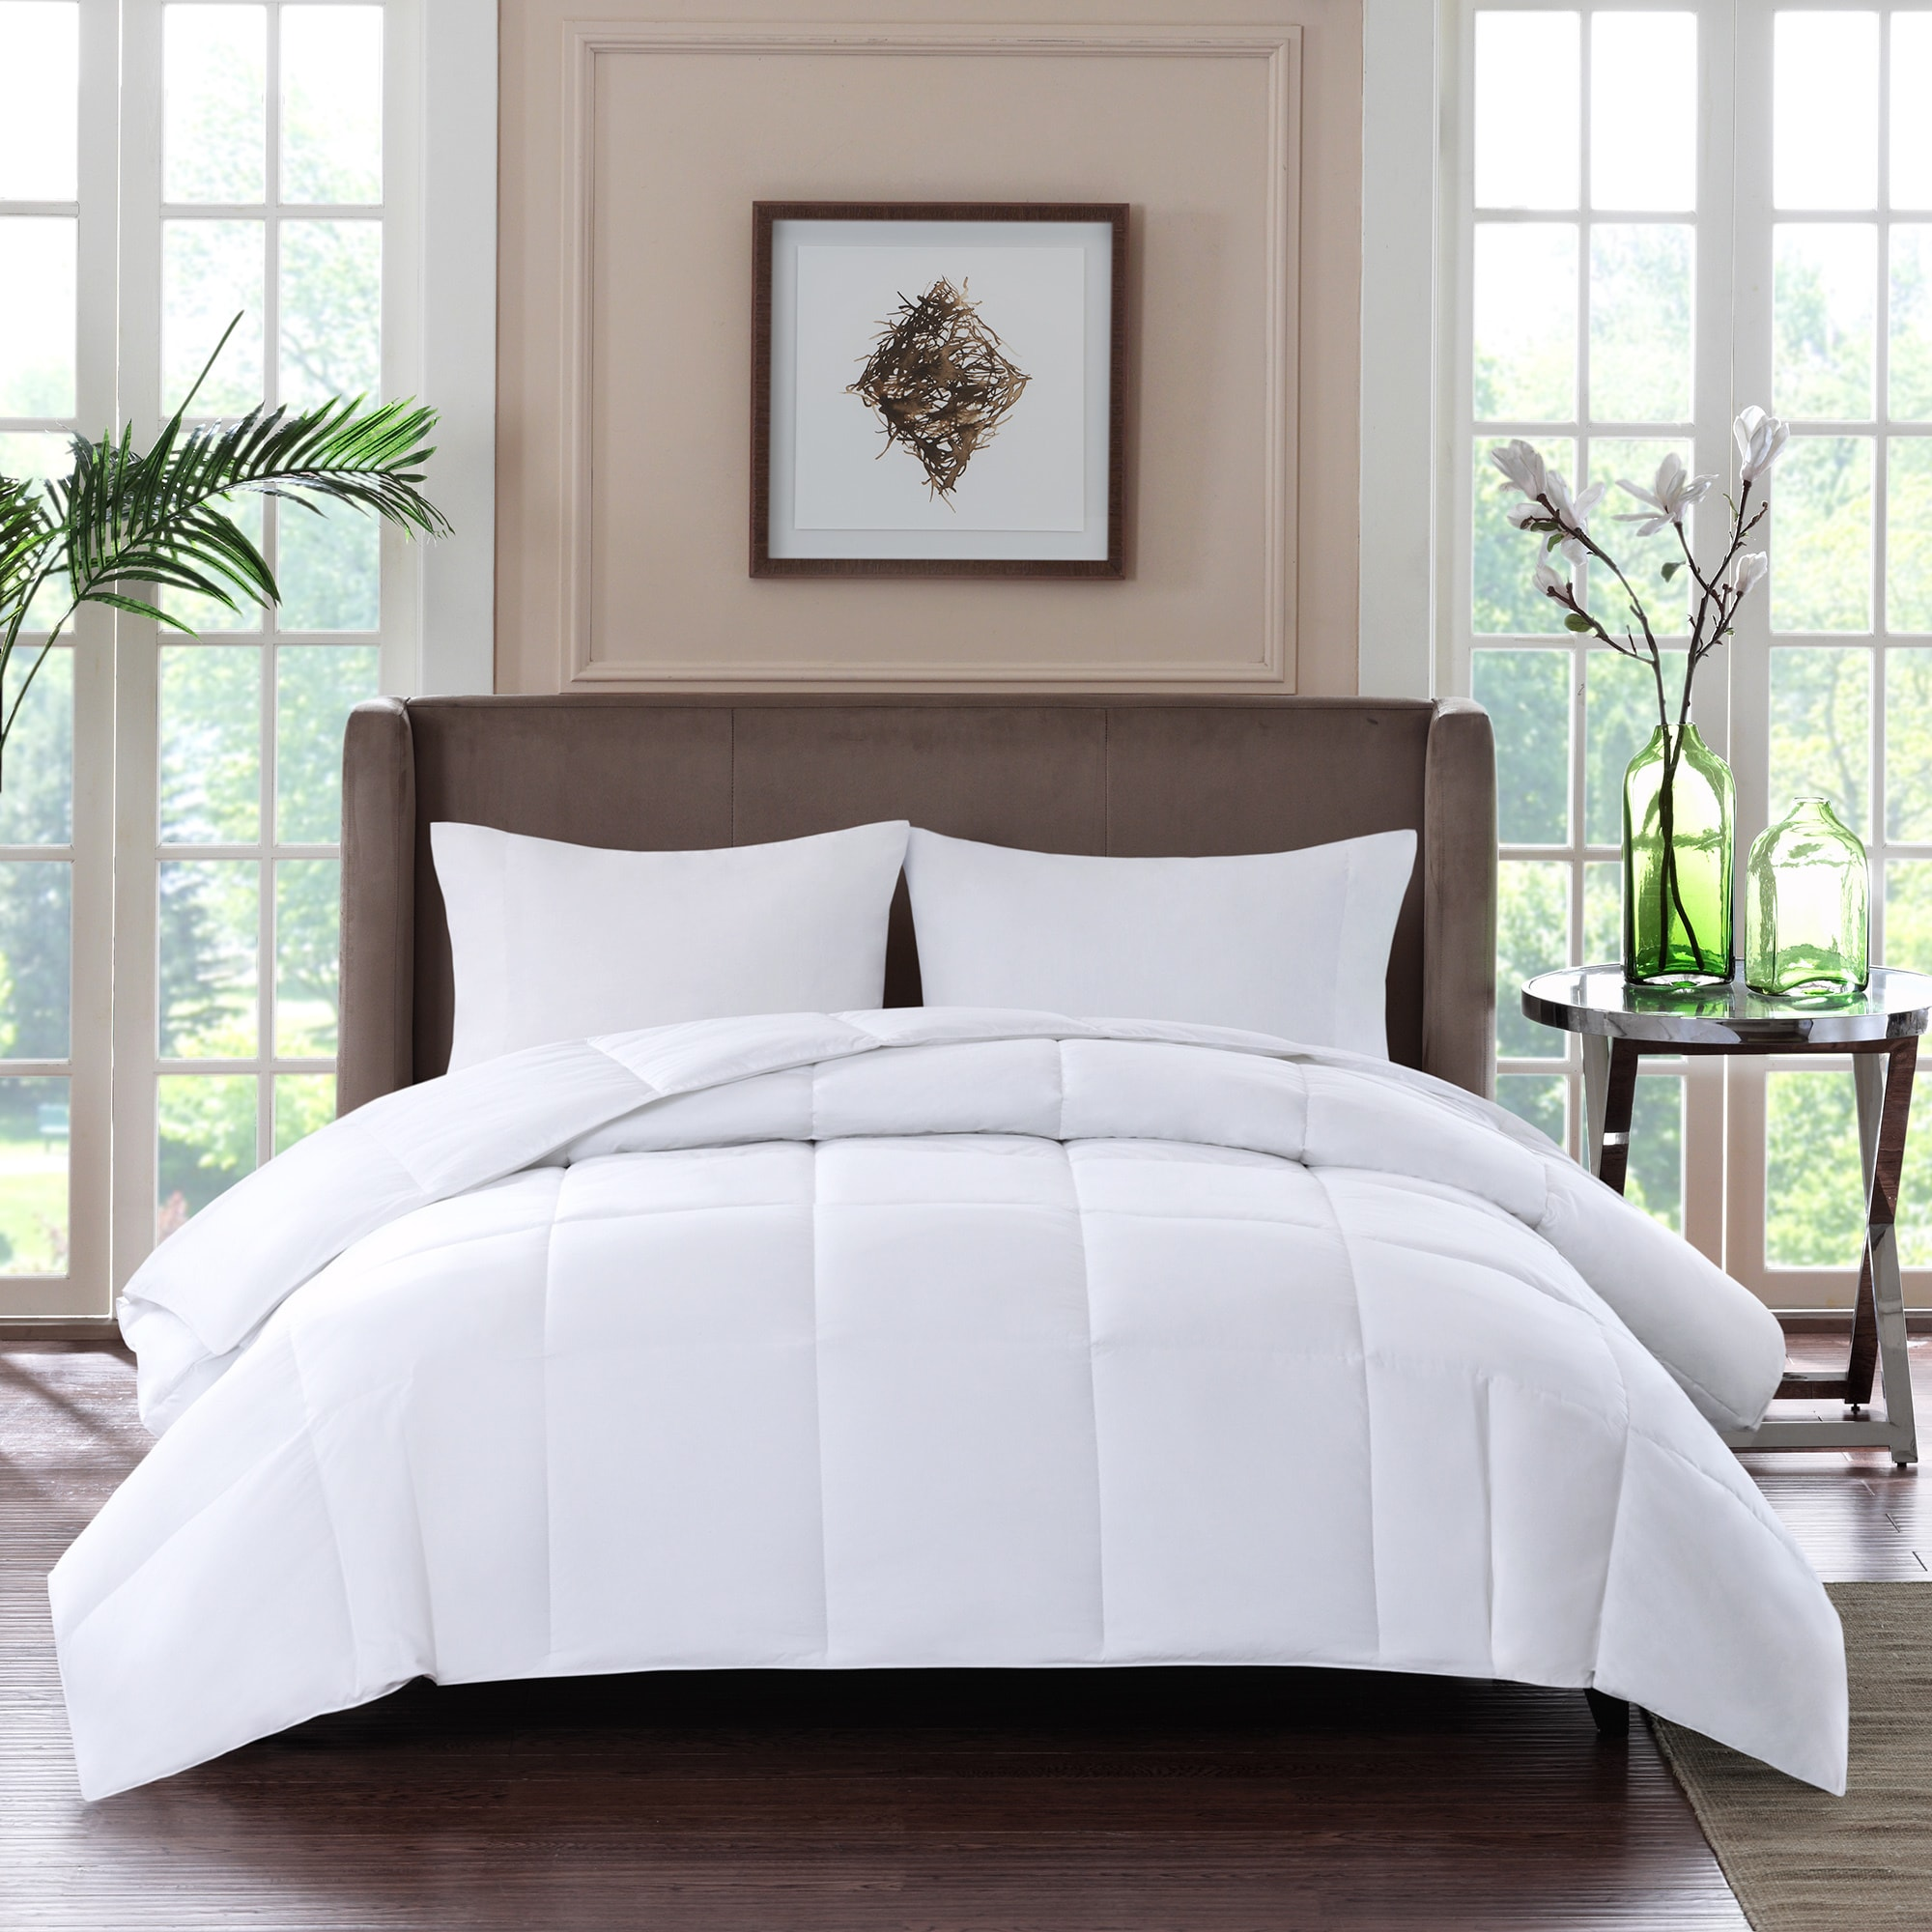 for comfy what co number size split comforter reviews sheets sleep tempurpedic sets asli mattress king design aetherair bedroom your